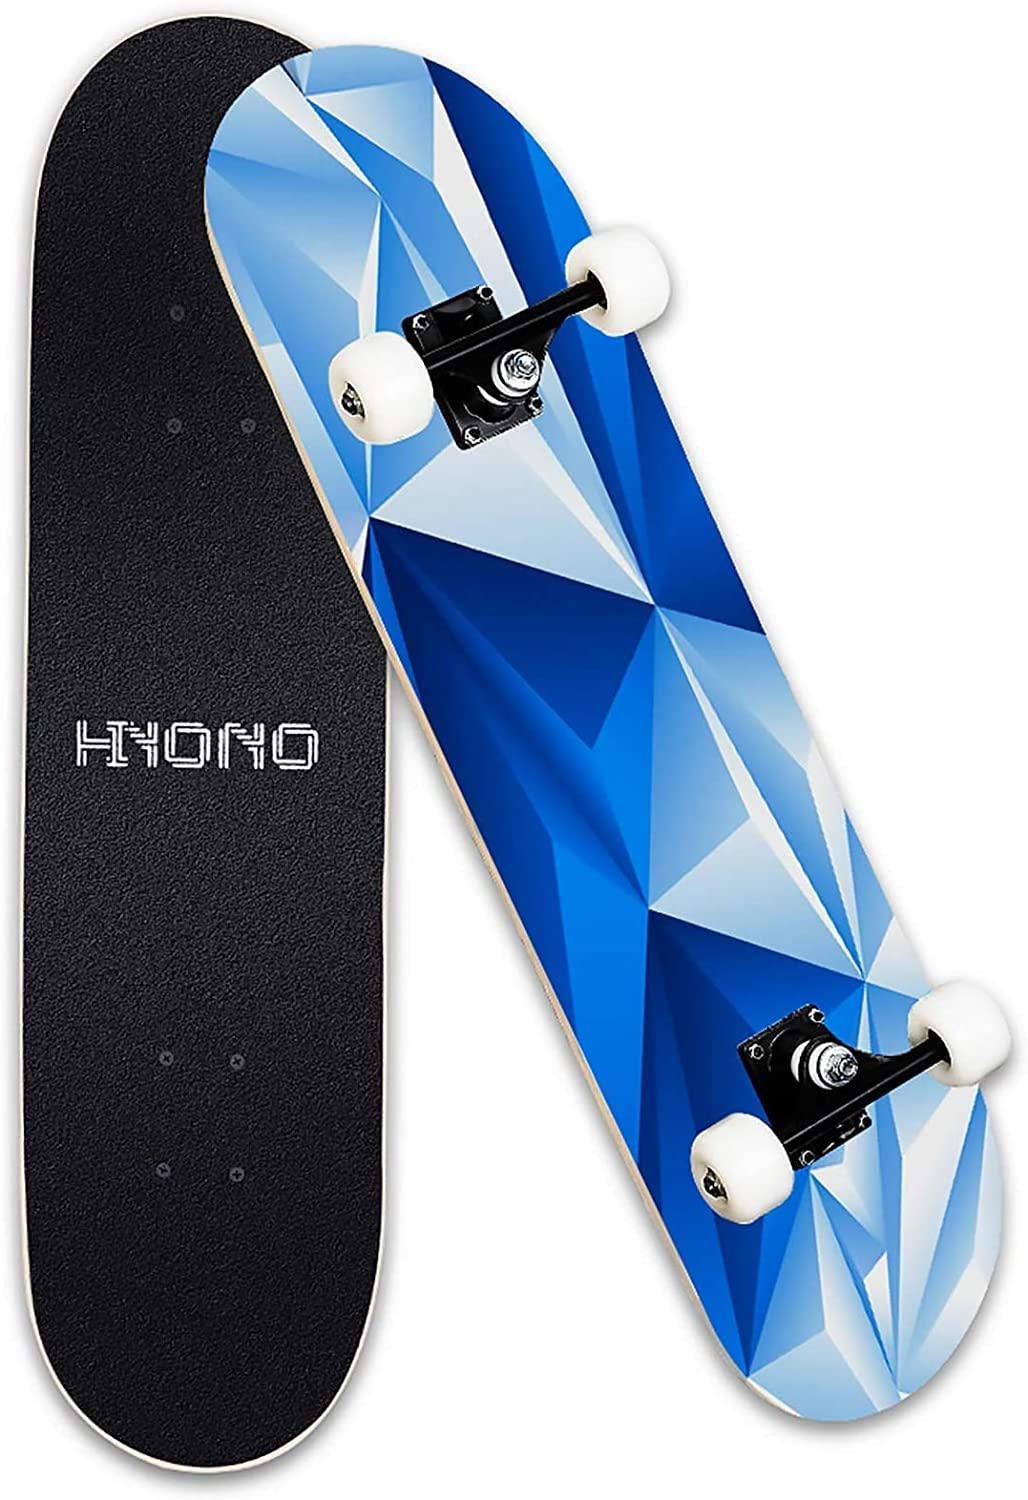 """ScientoySkateboard, Beginner Skateboards, 31""""x 8"""" Complete Pro Skateboard with A Repair Kit for Kids/Boys/Girls/Youth/Adults, 9 Layer Canadian Maple Double Kick Skateboard for Outdoor Sports : Sports & Outdoors"""